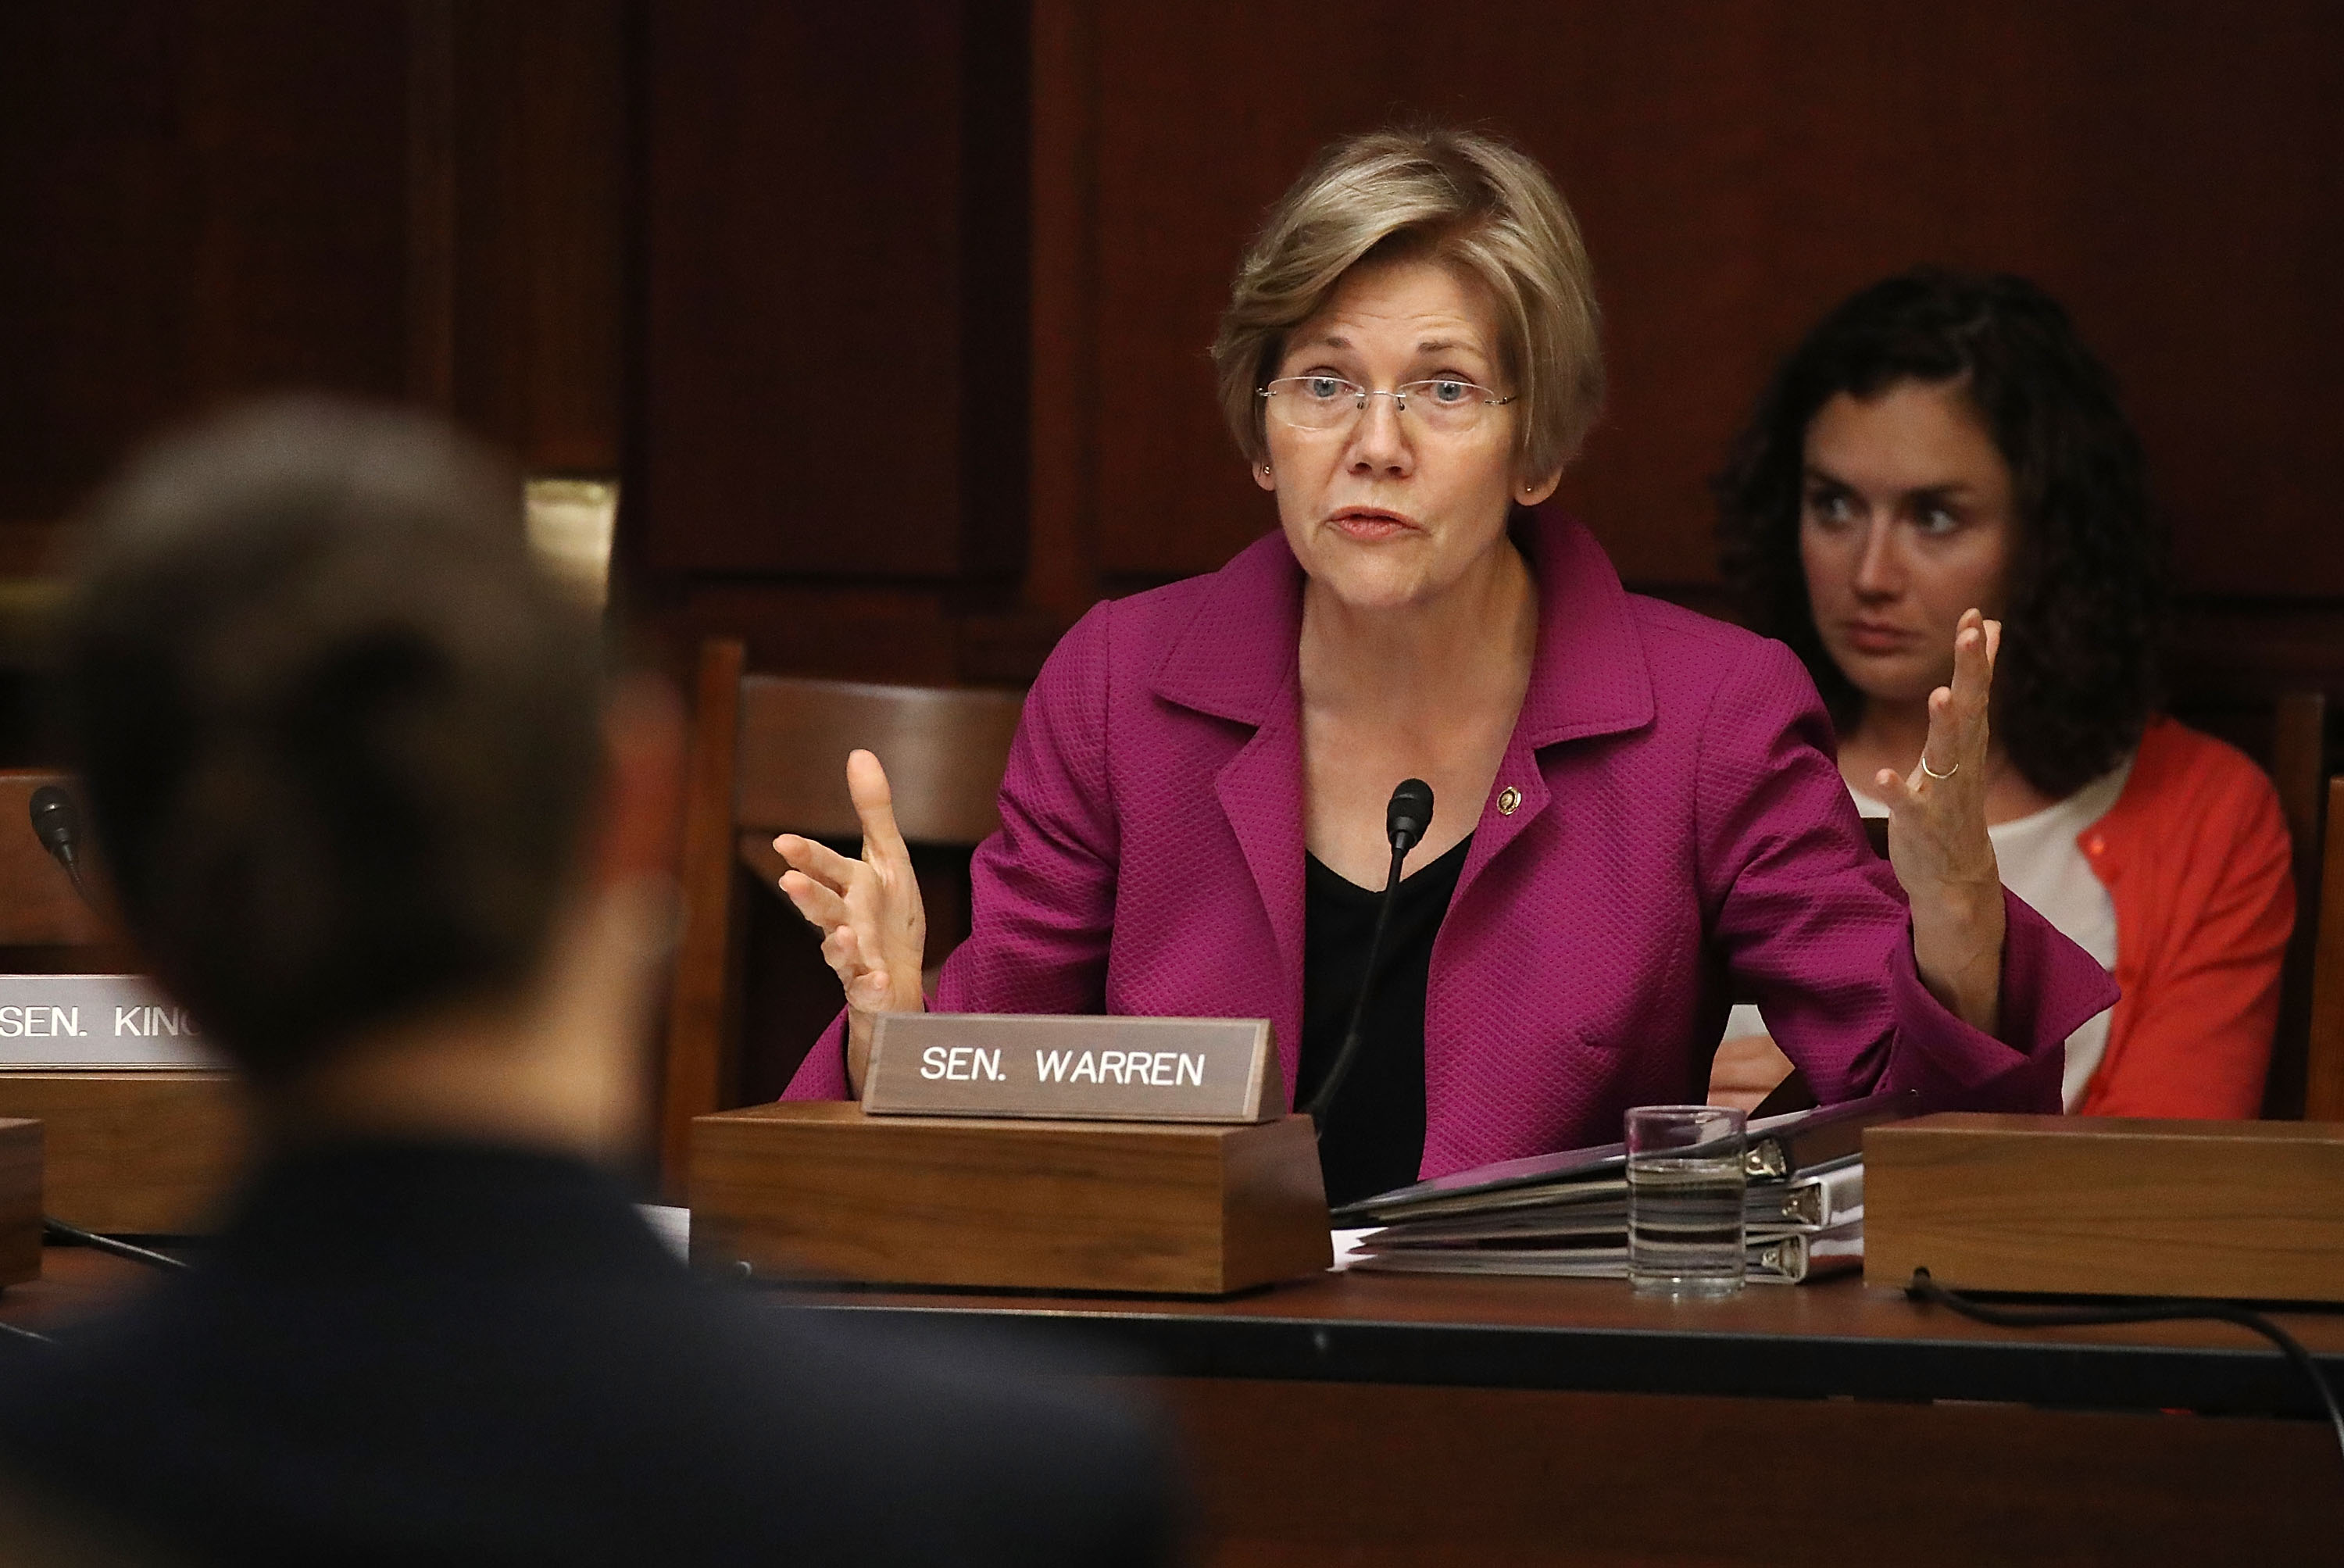 Sen. Elizabeth Warren (D-MA) speaks during the Democratic Policy and Communications Committee hearing in the Capitol building on July 19, 2017 in Washington, DC.